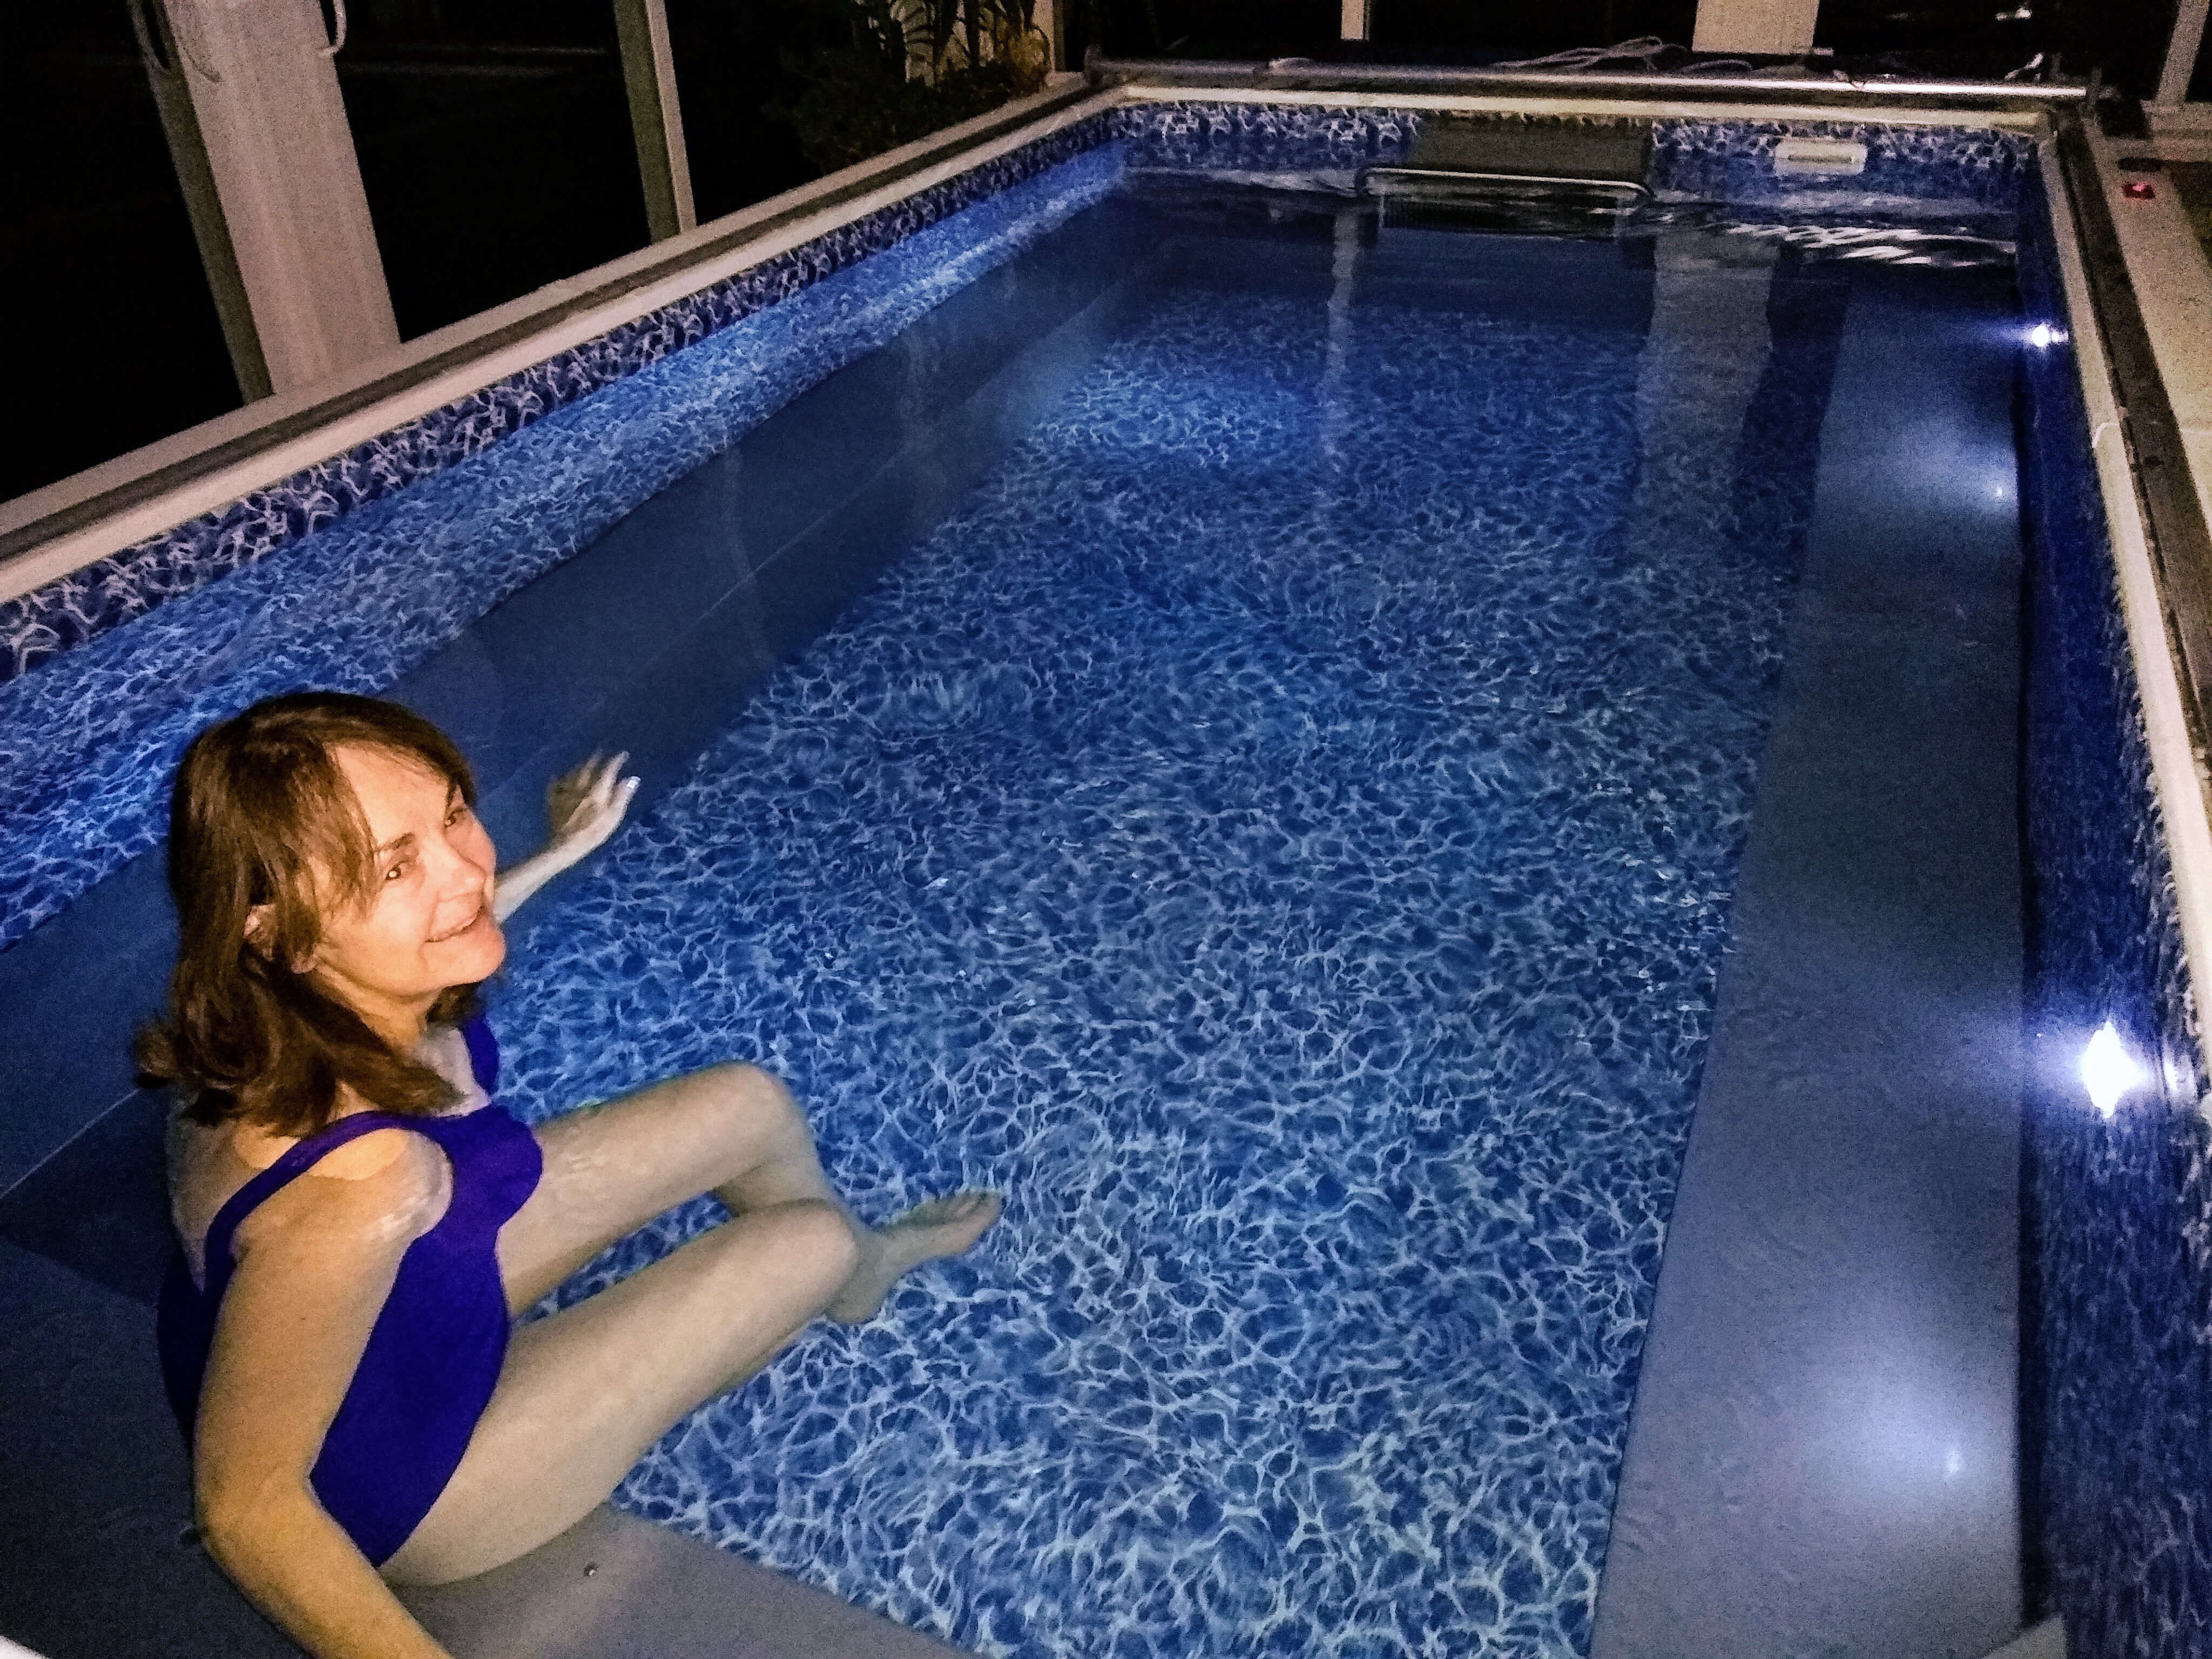 Gayle using her Original Endless Pools to manage her multiple sclerosis symptoms